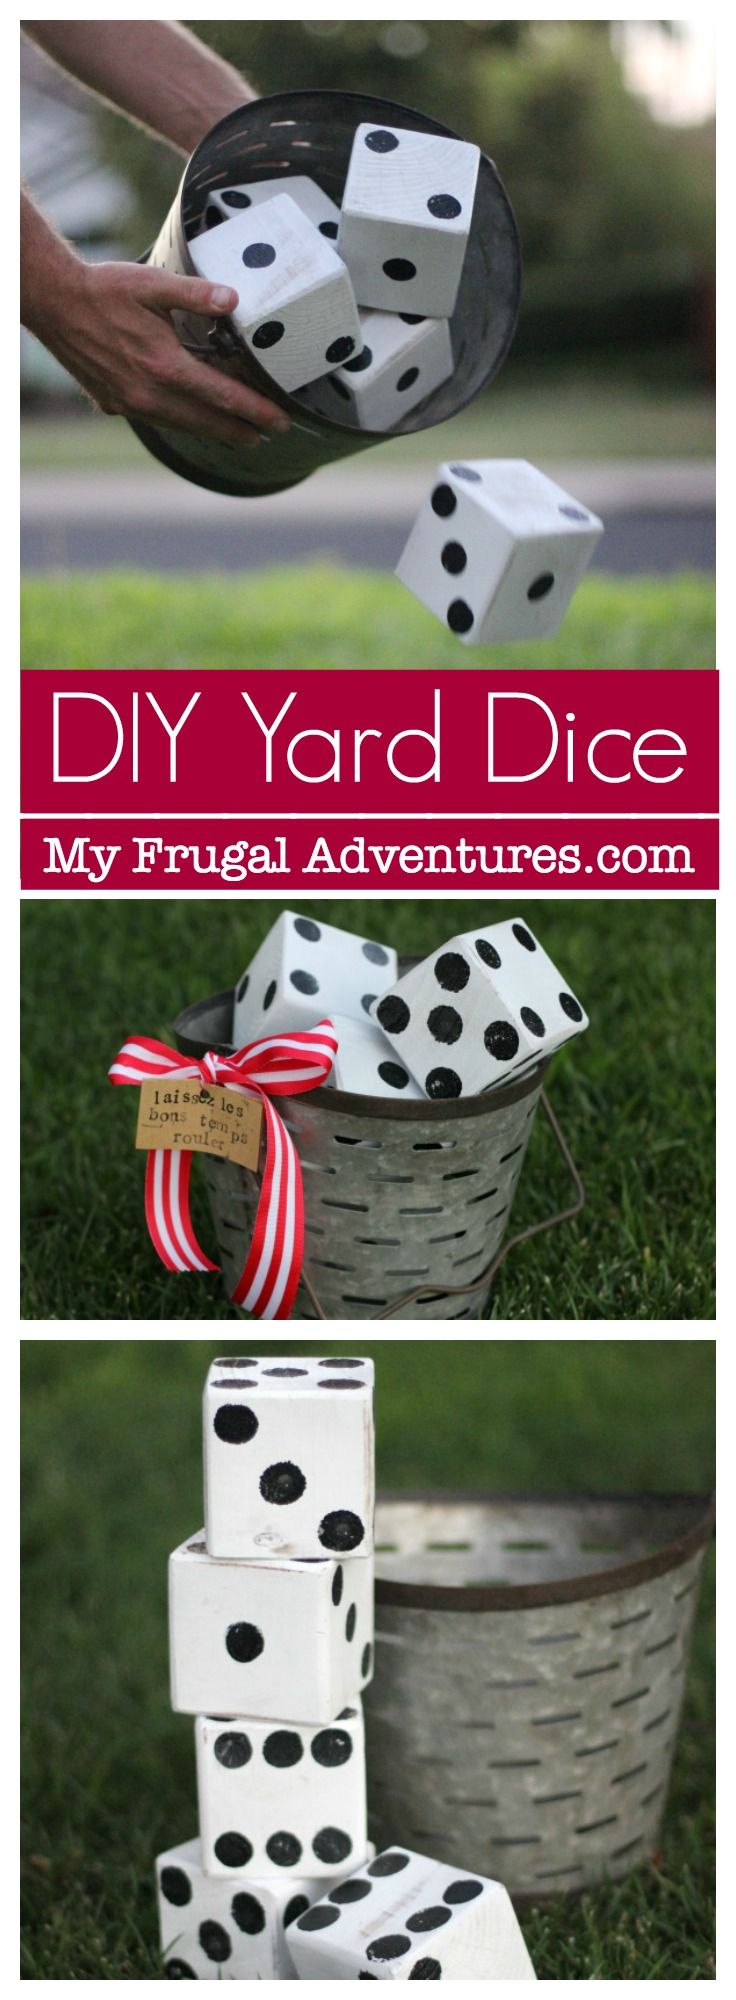 Super simple DIY lawn dice. Such a fun activity for outdoor games or entertainin...